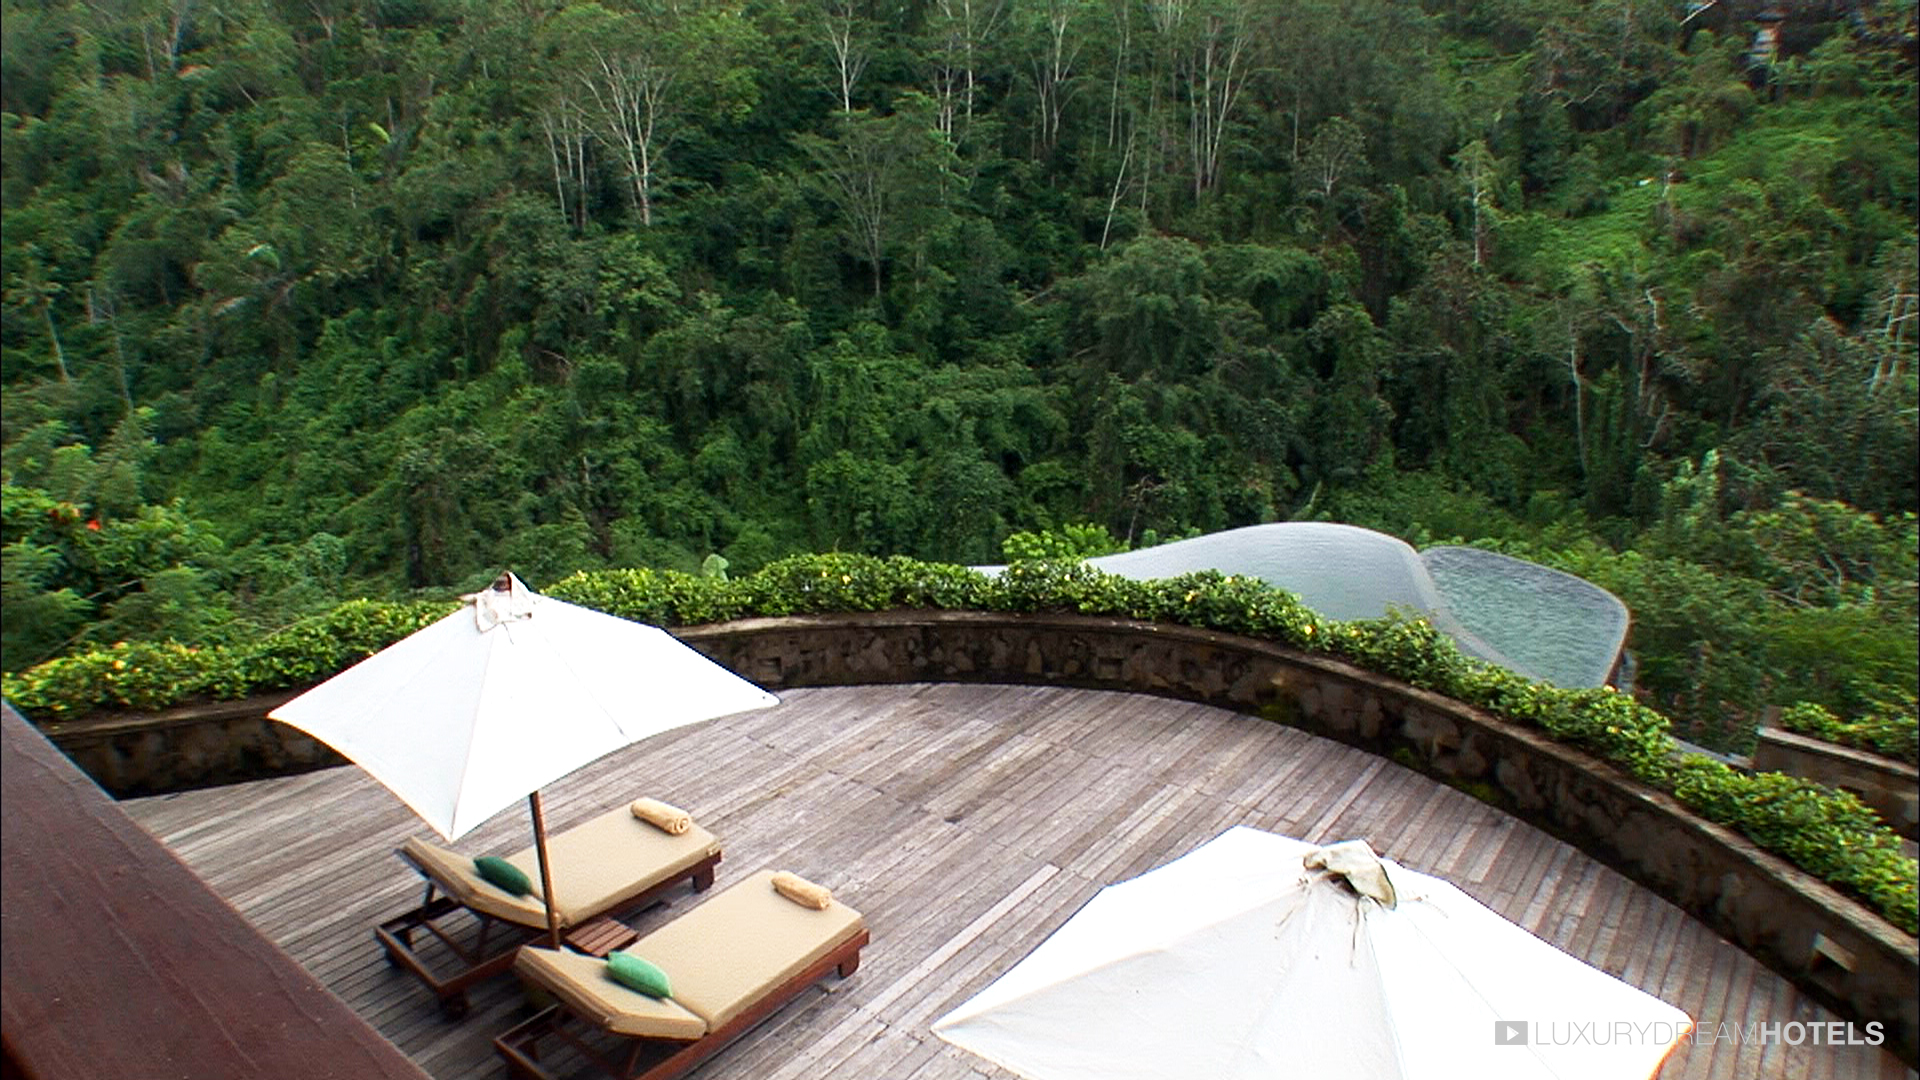 Luxury hotel Ubud Hanging Gardens Bali Indonesia Luxury Dream